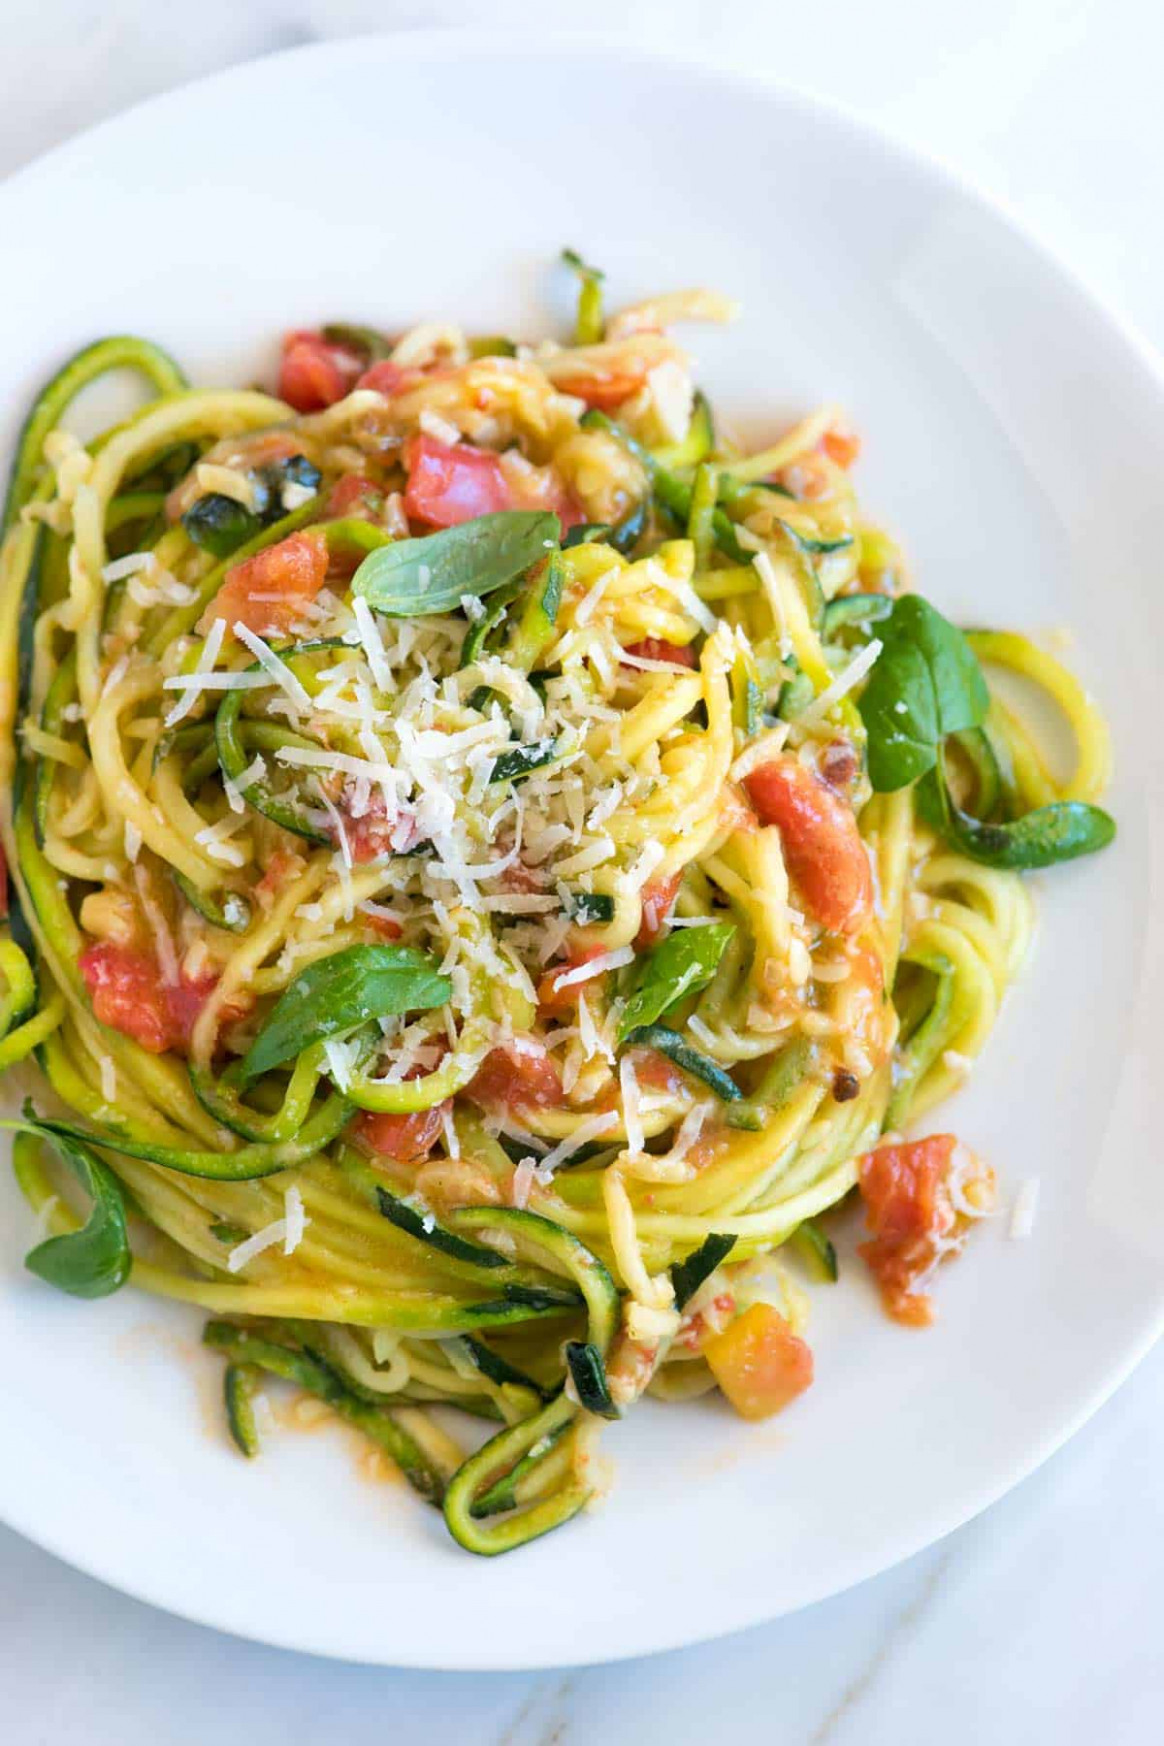 Guilt-Free Garlic Parmesan Zucchini Noodles Pasta Recipe - healthy zucchini noodle recipes